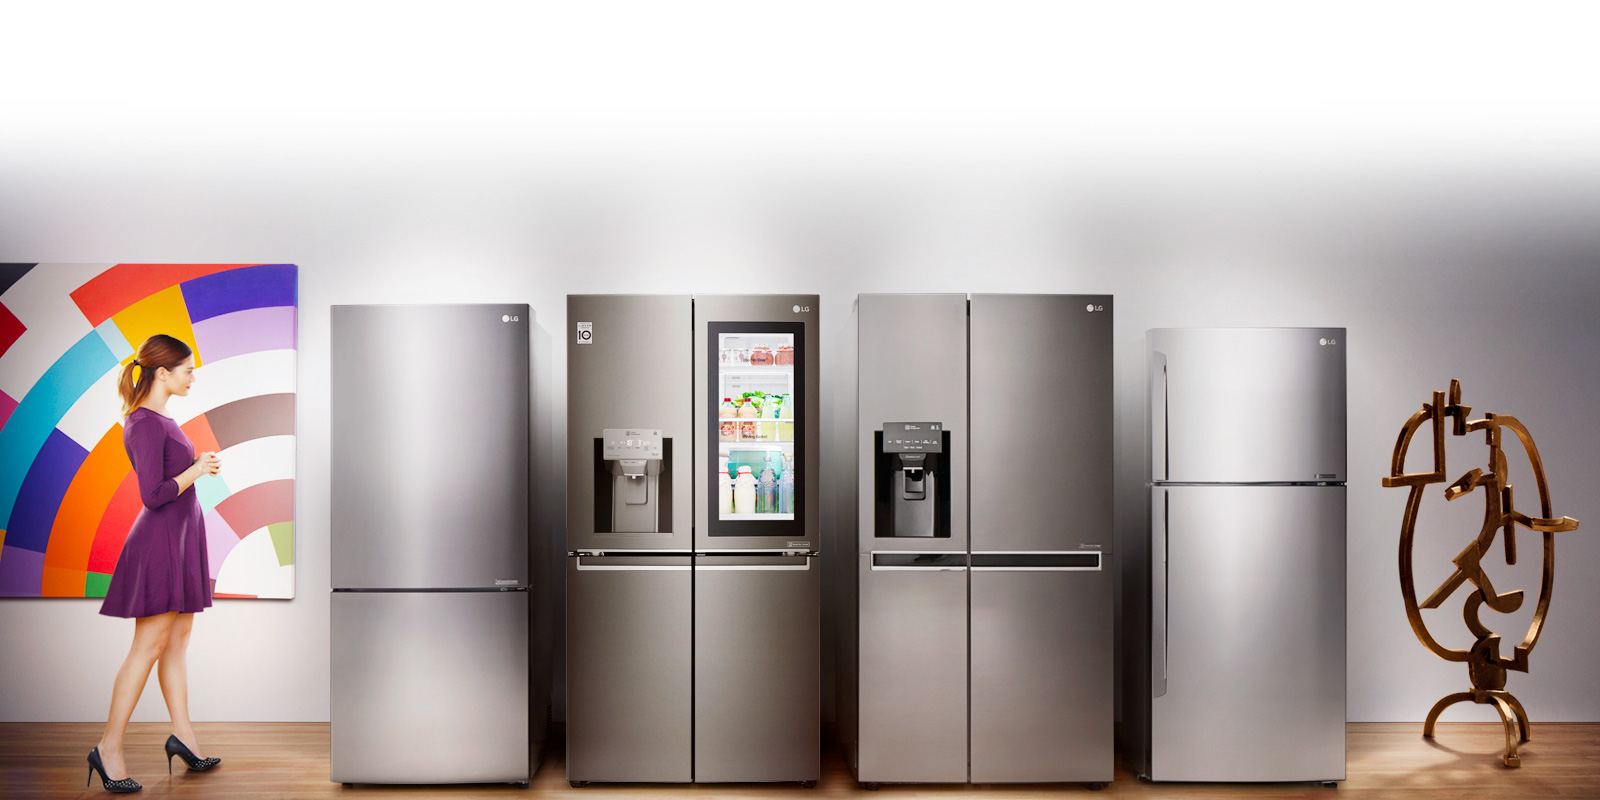 Tweeting from a Fridge Is Possible, but the #FreeDorothy Saga Is Likely Fake